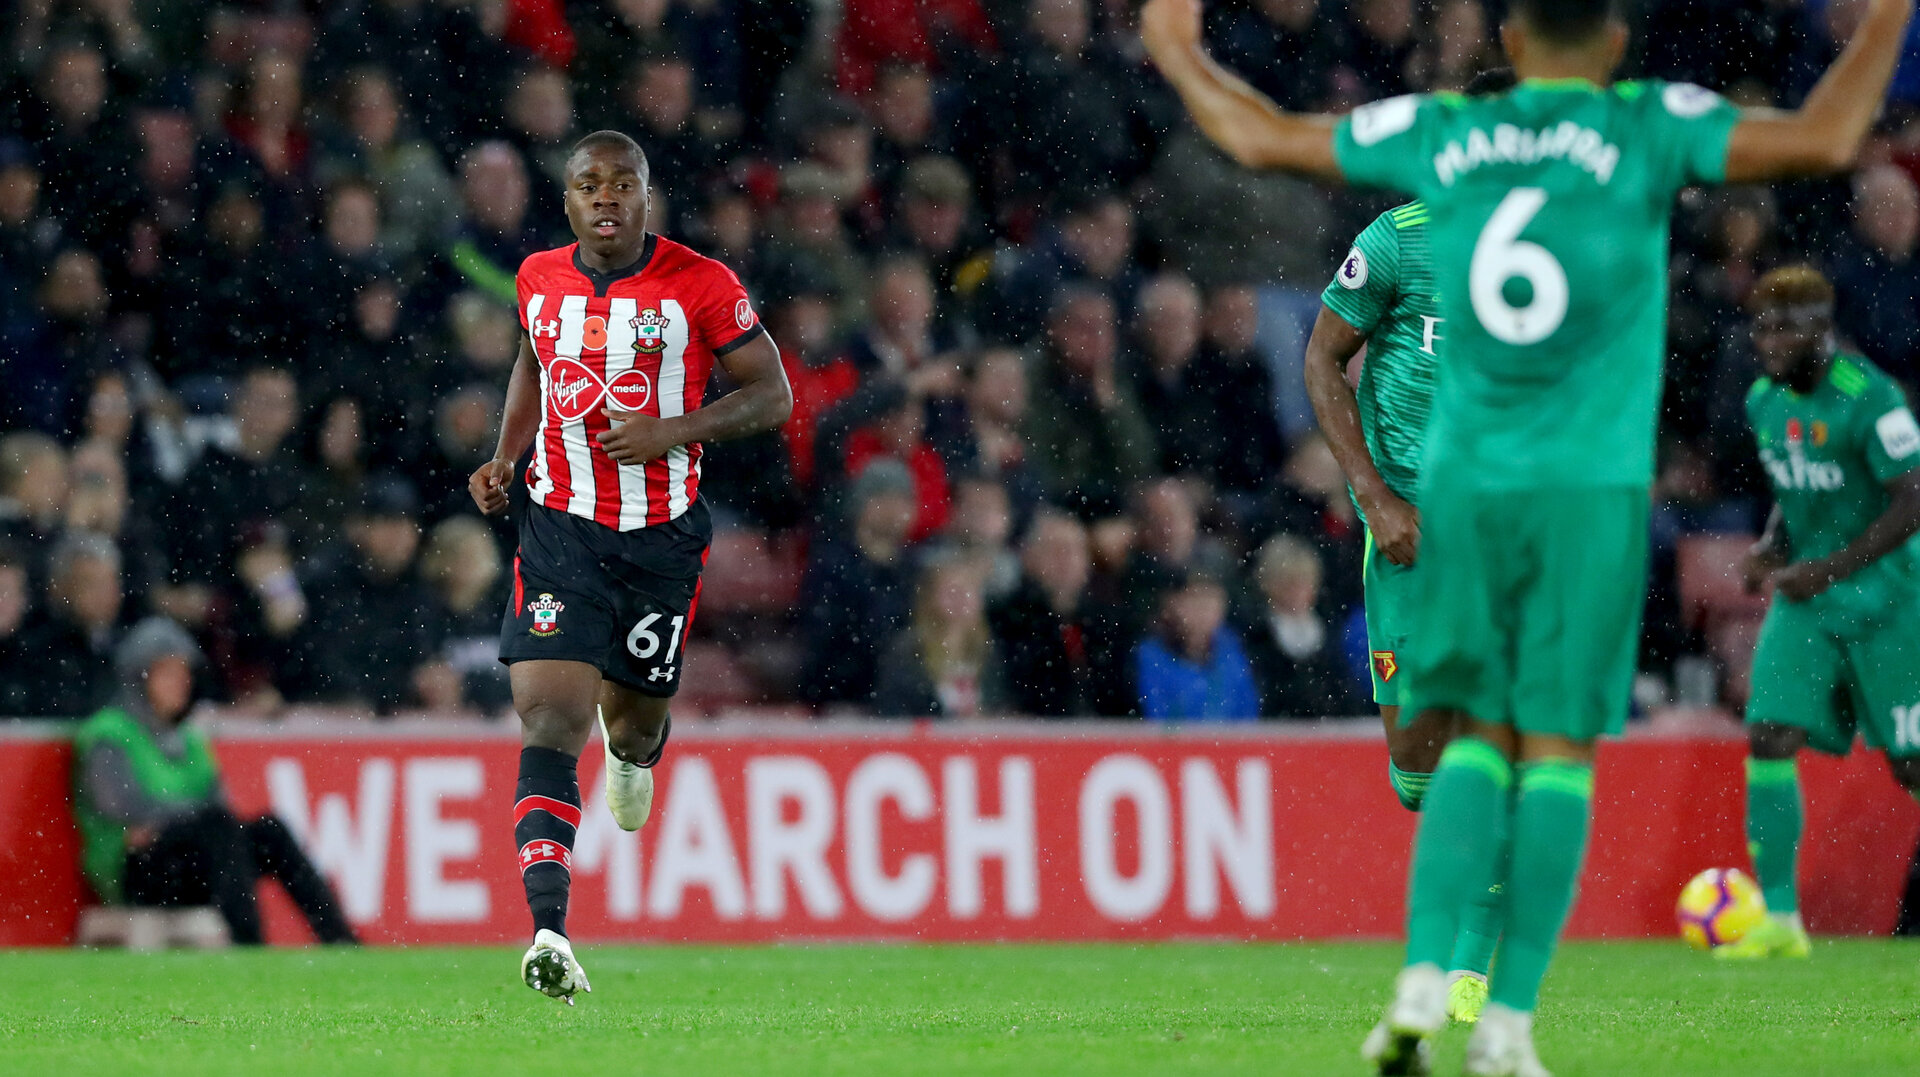 SOUTHAMPTON, ENGLAND - NOVEMBER 10: Michael Obafemi of Southampton during the Premier League match between Southampton FC and Watford FC at St Mary's Stadium on November 10, 2018 in Southampton, United Kingdom. (Photo by Matt Watson/Southampton FC via Getty Images)